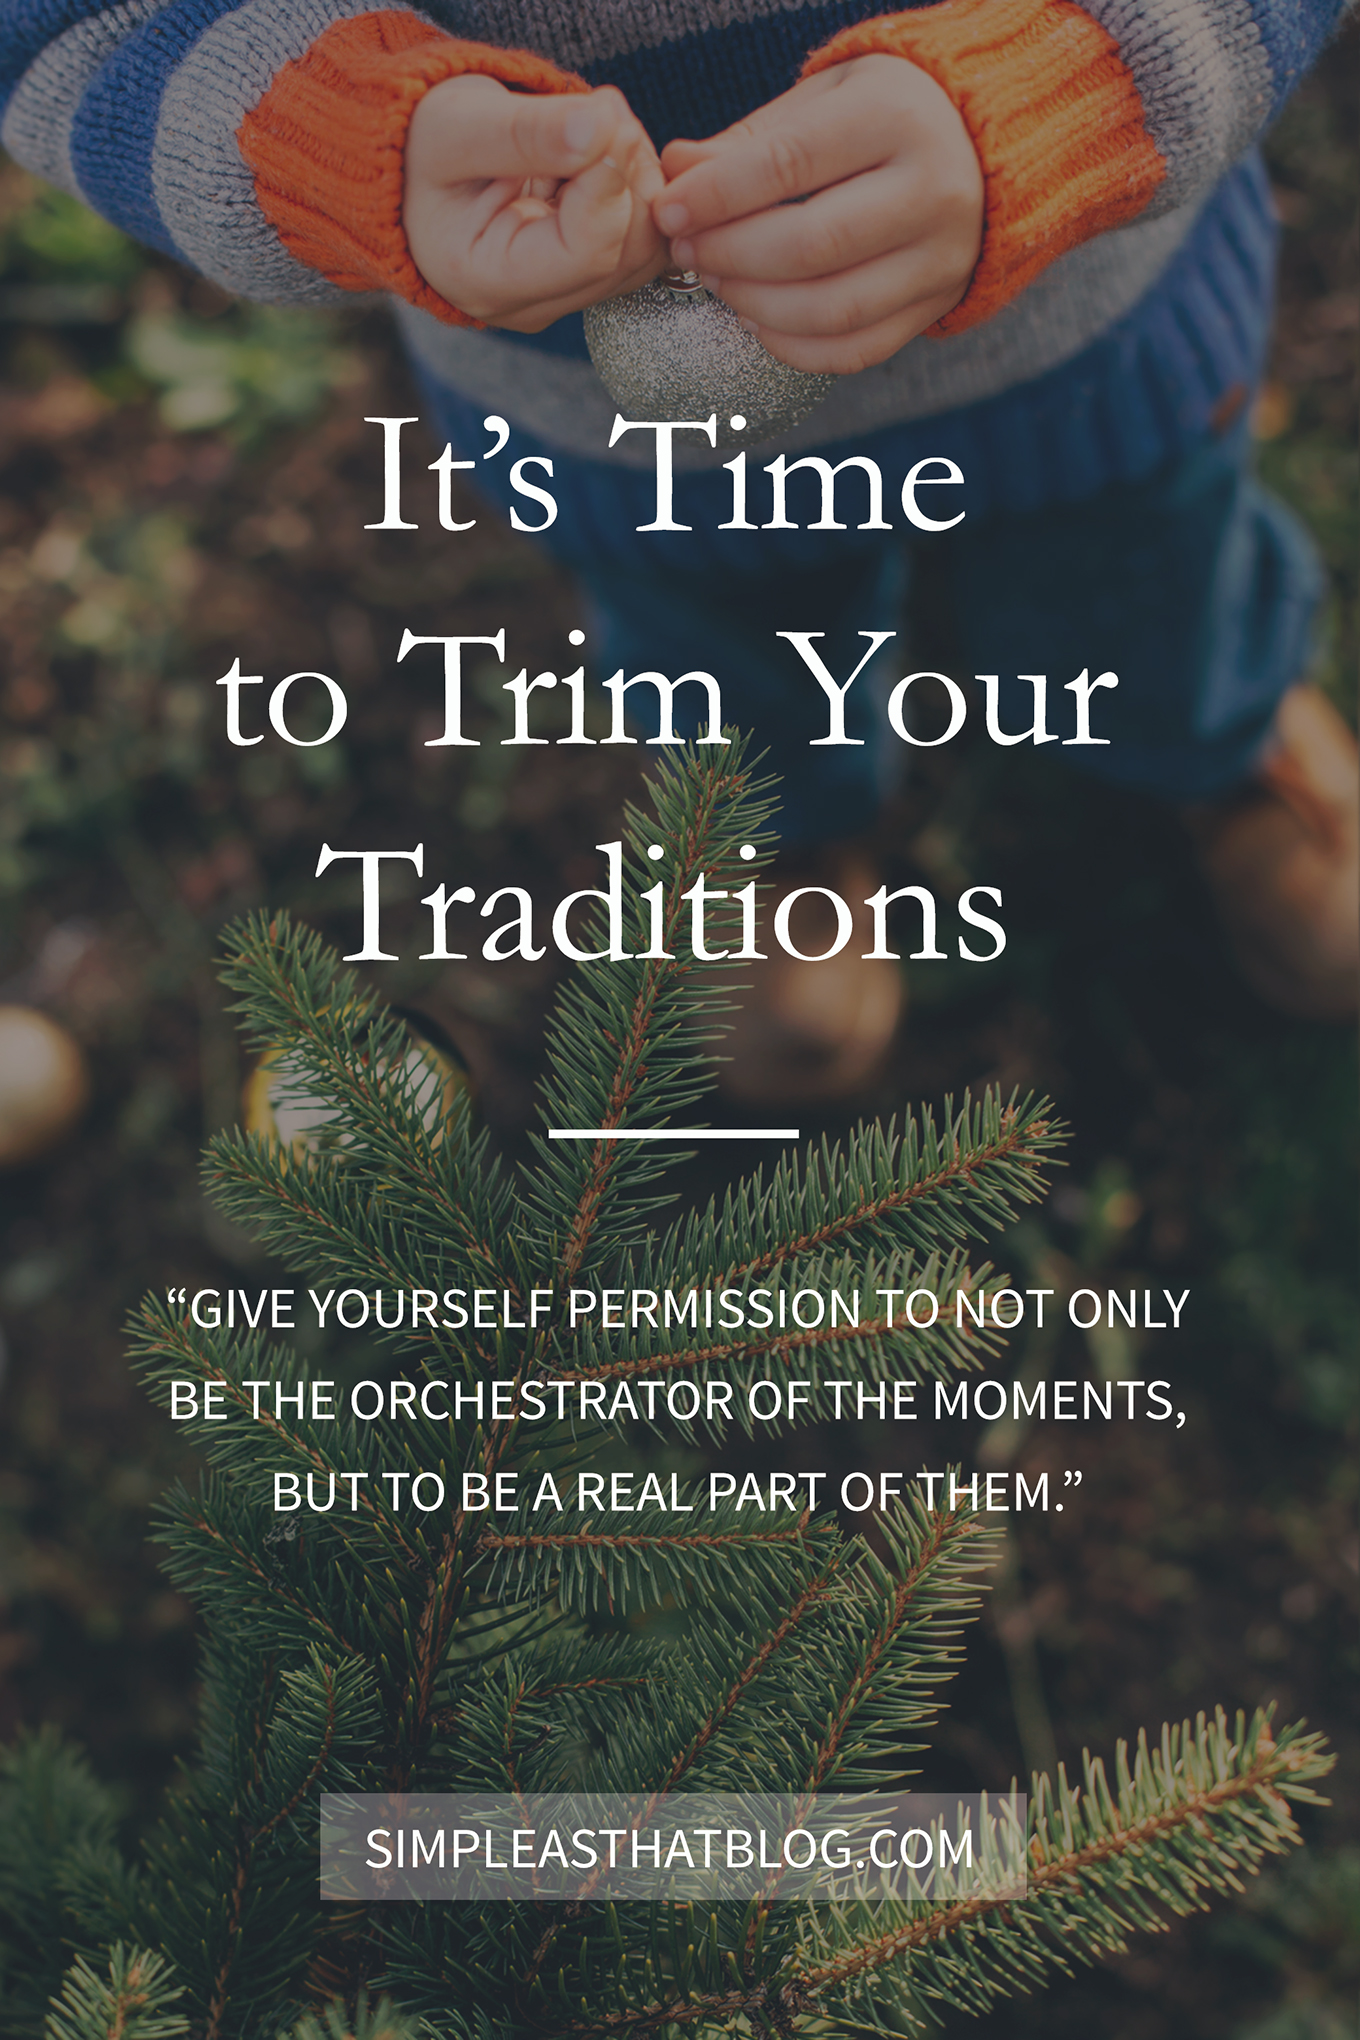 It's time to trim your traditions and give yourself permission to not only be the orchestrator of the moments, but to be a real part of them.